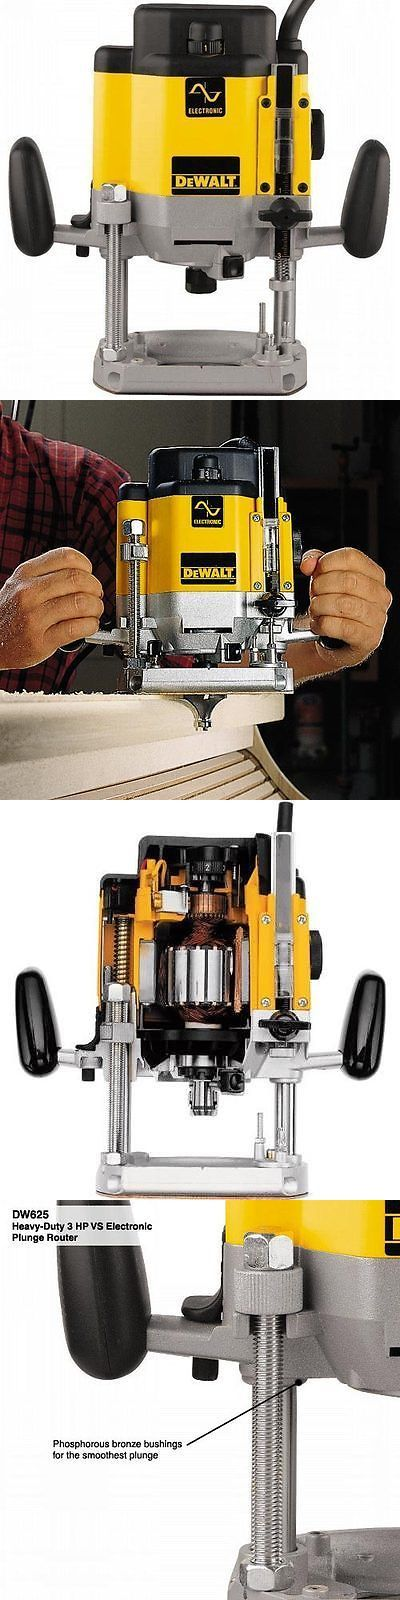 Routers 122829 dewalt dw625 3hp variable speed plunge router routers 122829 dewalt dw625 3hp variable speed plunge router woodworking tool buy it greentooth Choice Image